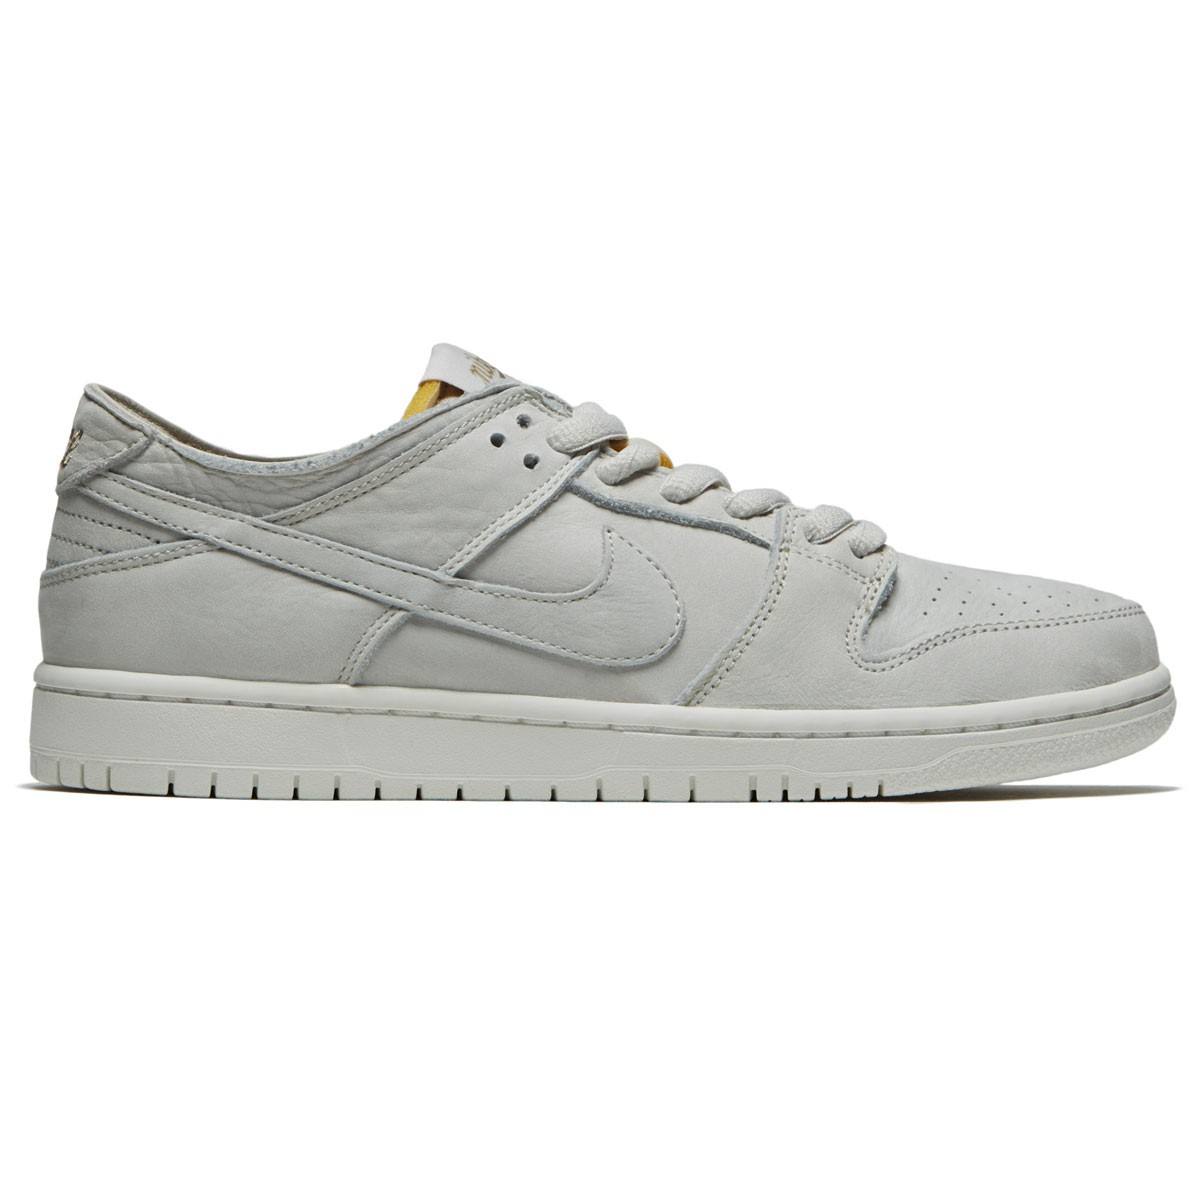 the latest 233ff c7a19 Nike SB Zoom Dunk Low Pro Deconstruct Shoes